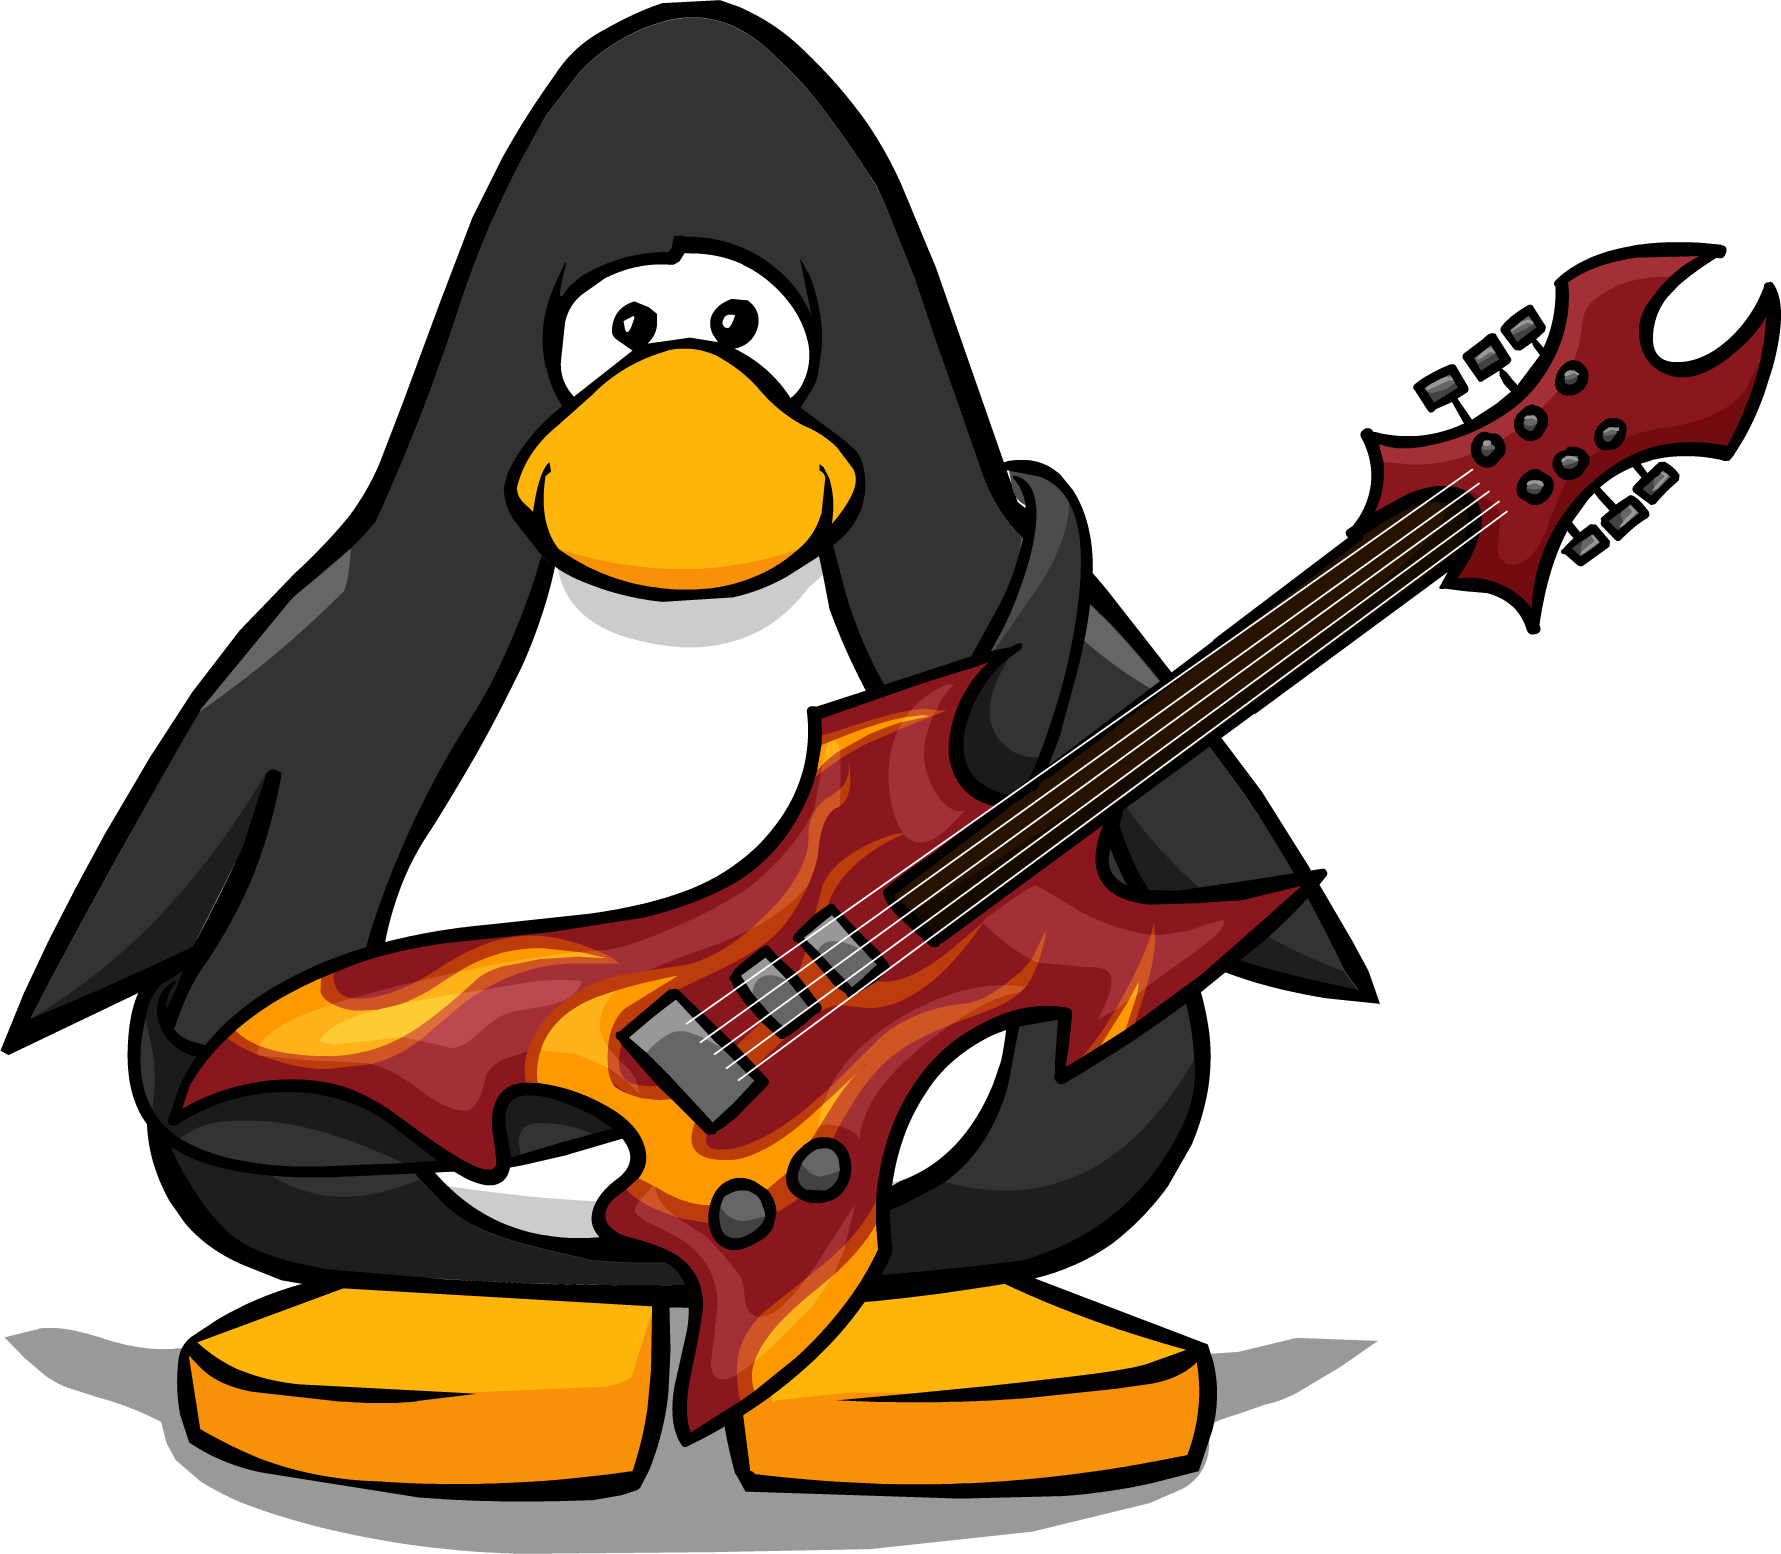 Clipart rock heavy rock. Image hard guitar from